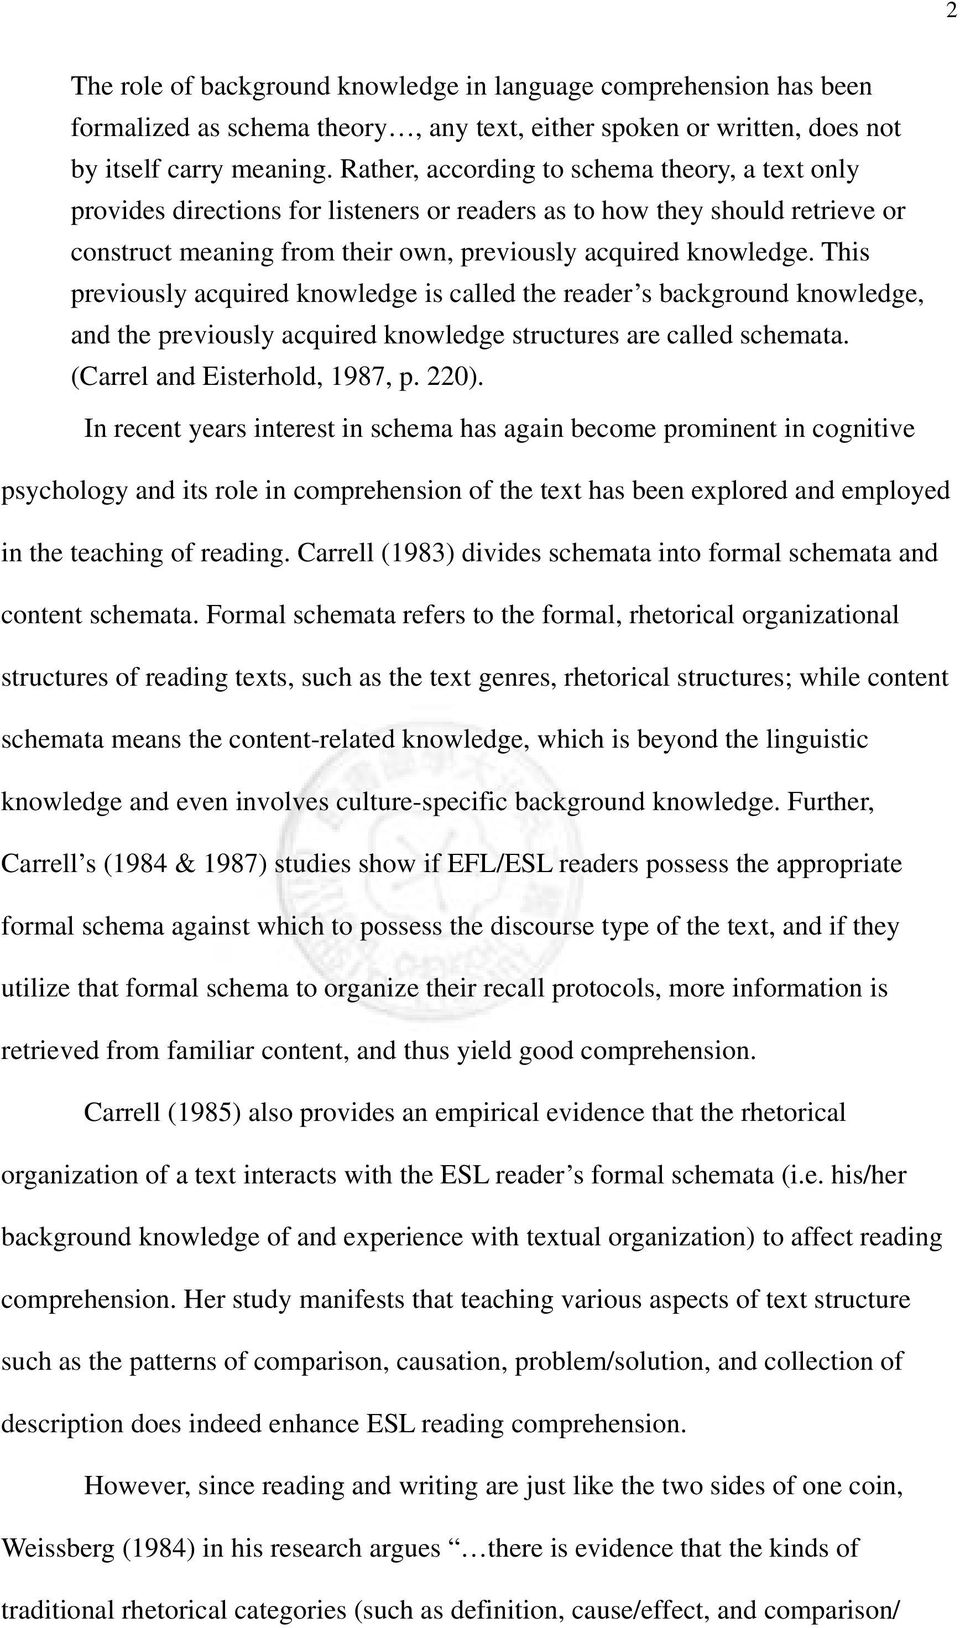 This previously acquired knowledge is called the reader s background knowledge, and the previously acquired knowledge structures are called schemata. (Carrel and Eisterhold, 1987, p. 220).